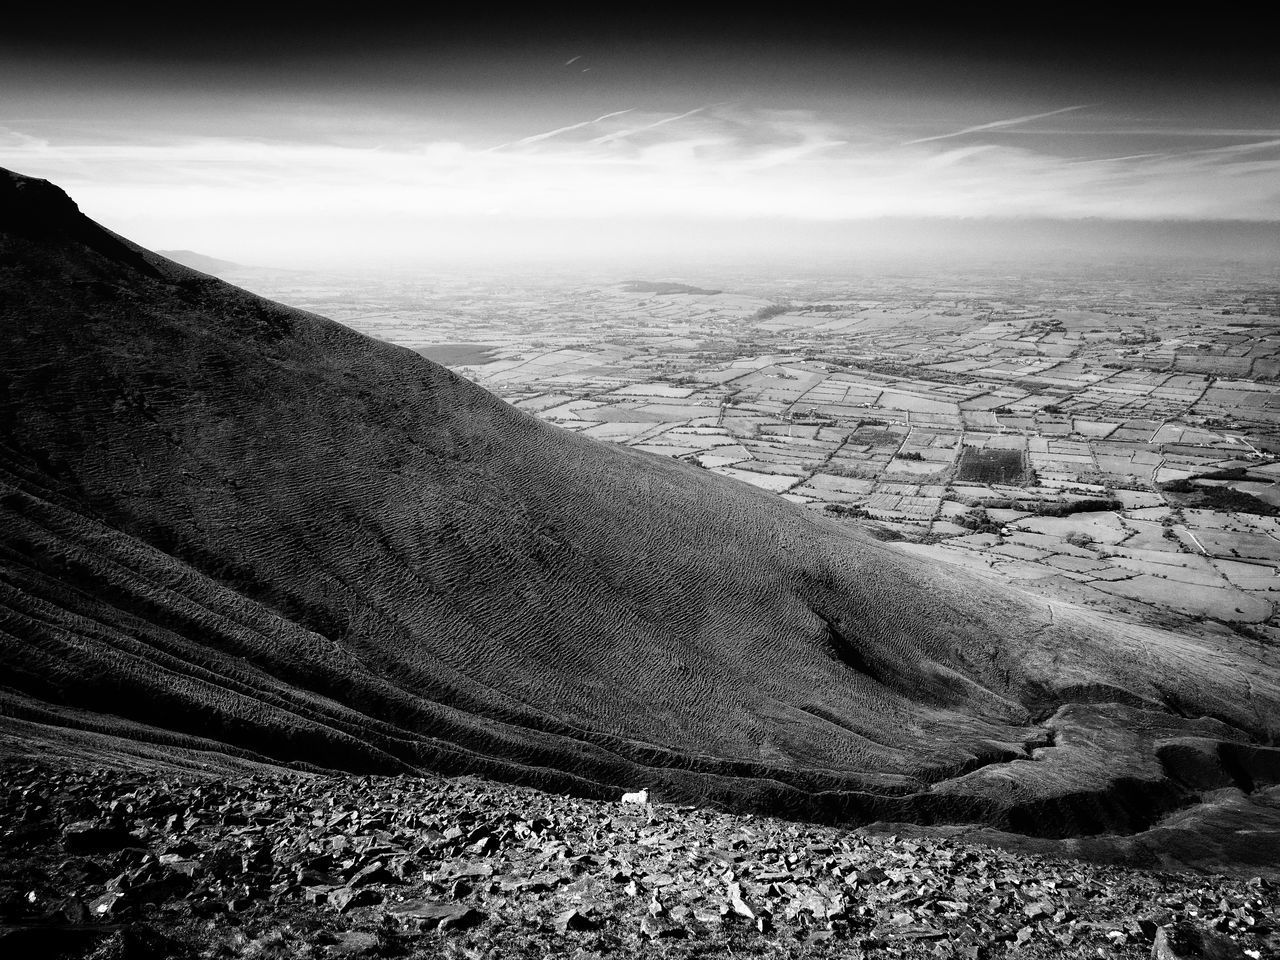 The Golden Vale ☘ Beauty In Nature Black & White Black And White County Limerick Day Galtee Mountains Golden Vale Ireland Landscape Landscapes Mountain Nature No People Outdoors Physical Geography Scenics Sheep Sky Tranquil Scene Tranquility The Great Outdoors - 2017 EyeEm Awards